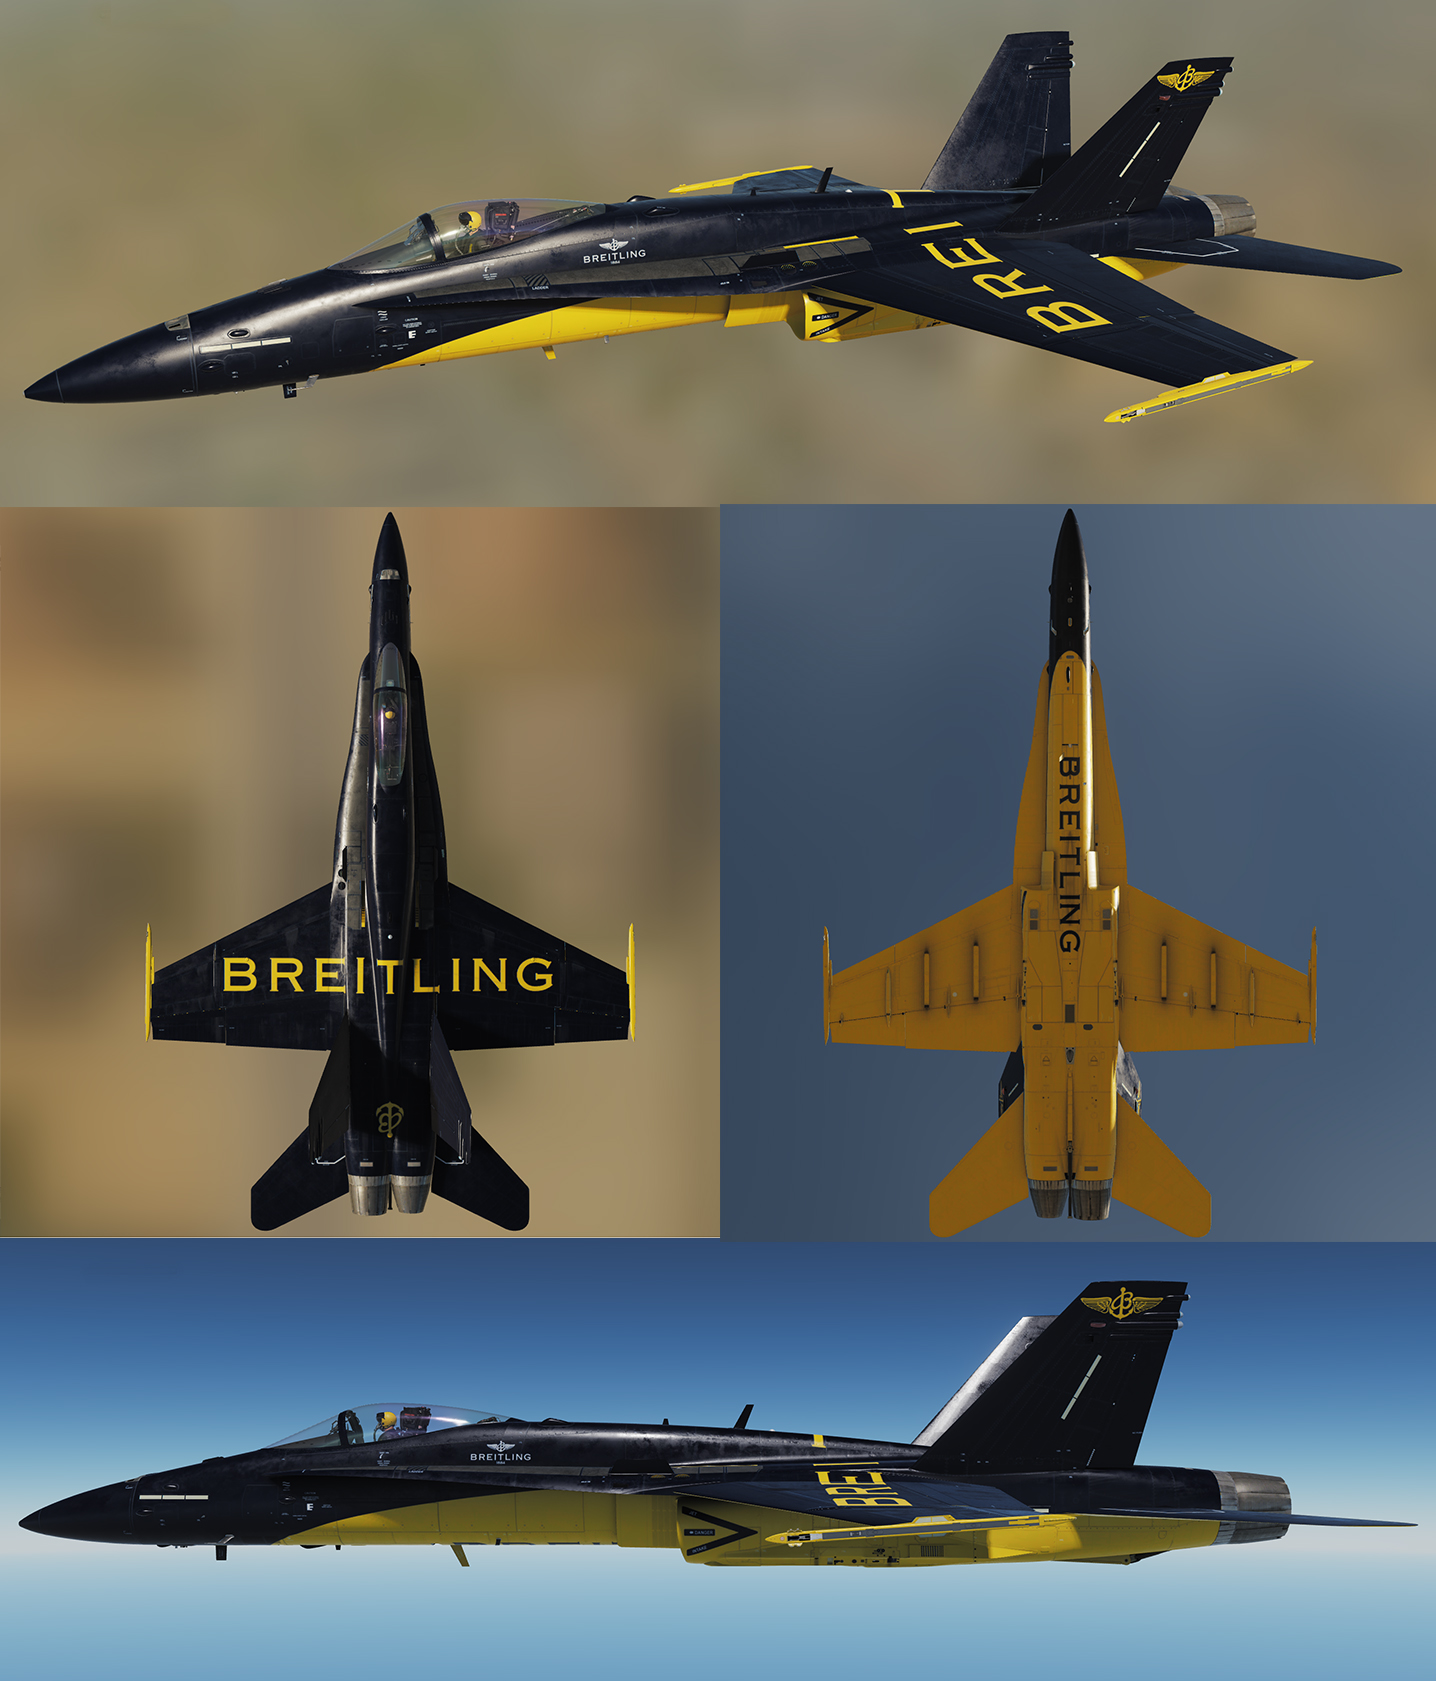 F-18 Racing Livery: Breitling